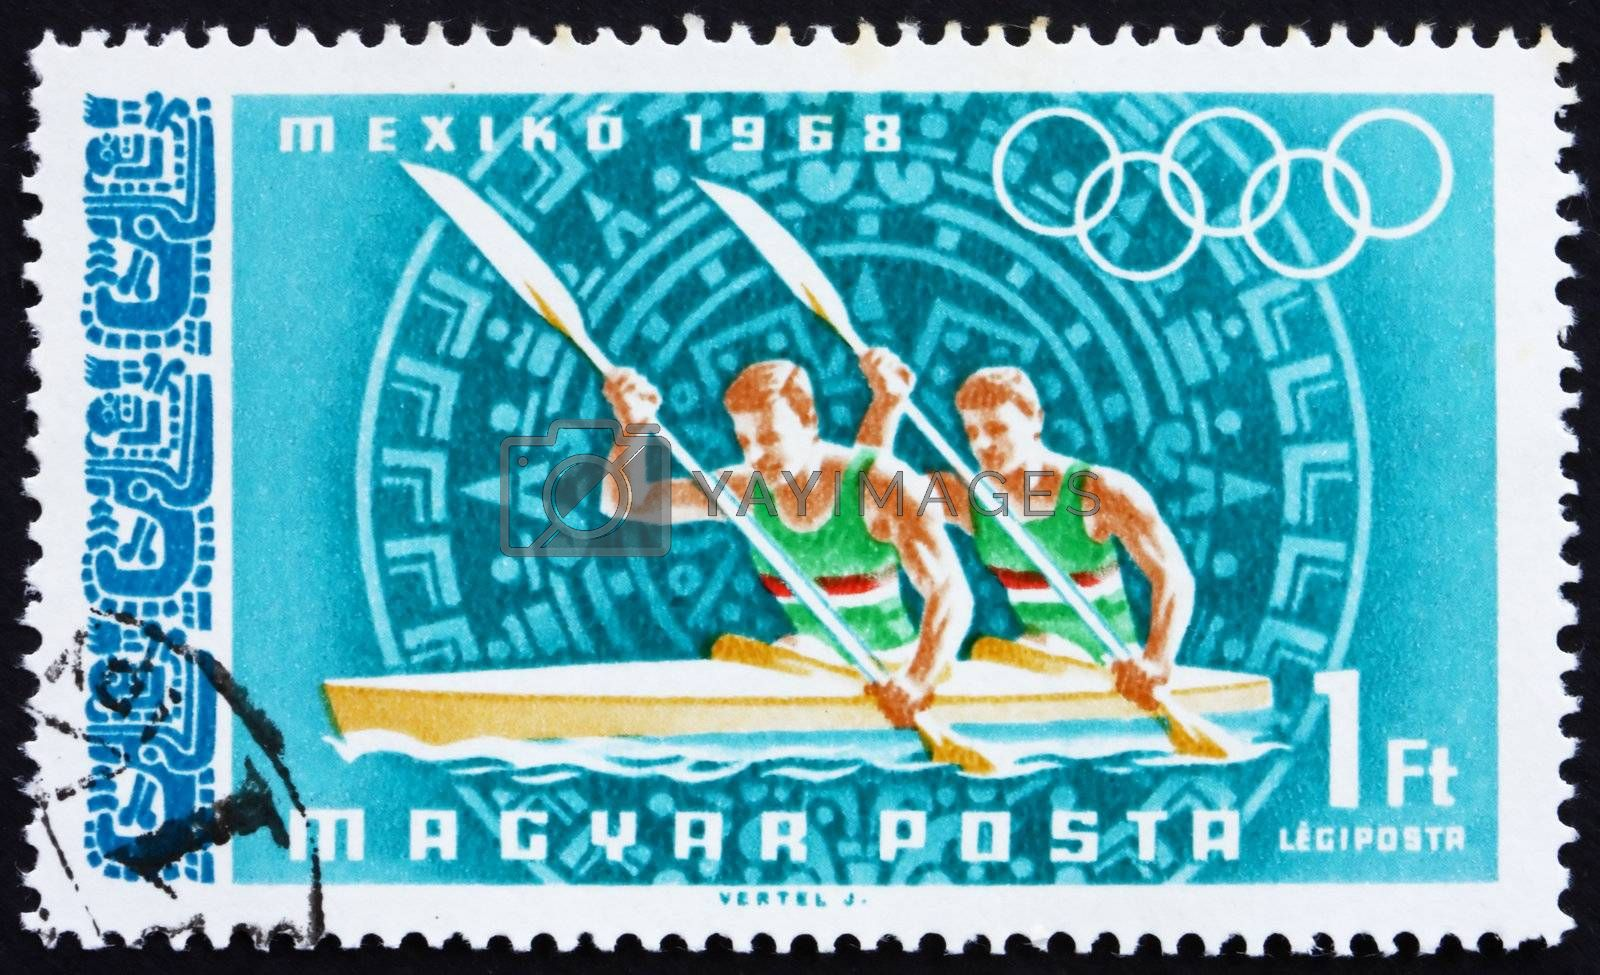 HUNGARY - CIRCA 1968: a stamp printed in the Hungary shows Canoeing, Summer Olympic sports, Mexico 68, circa 1968